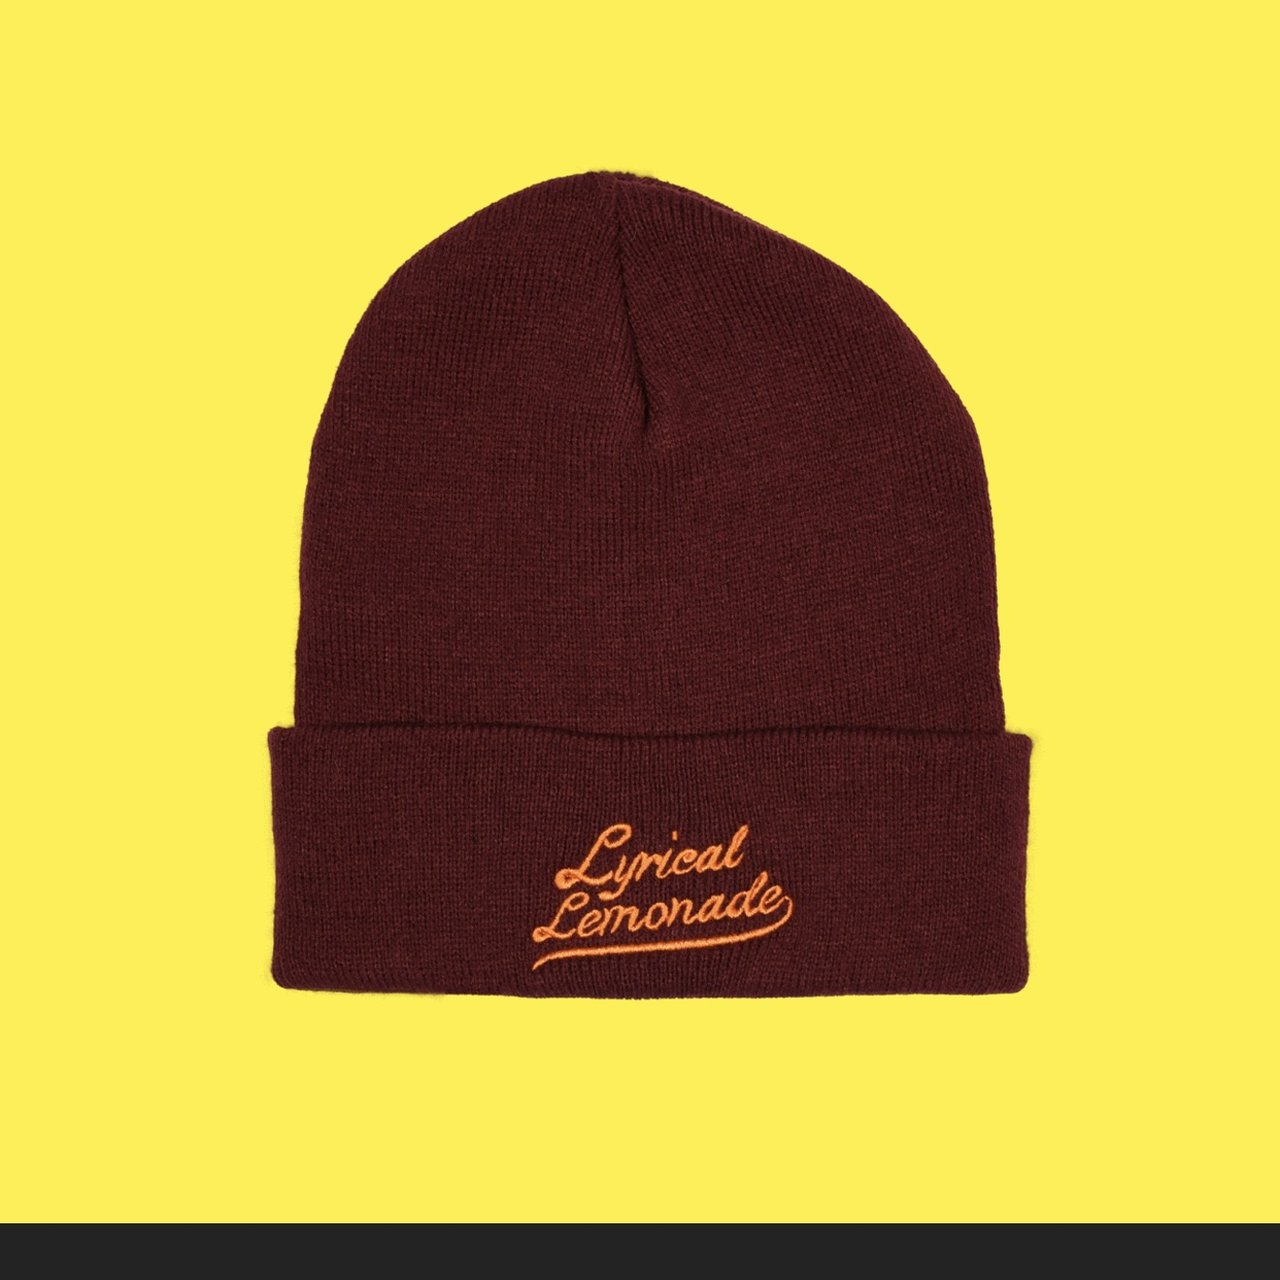 3735f129735 Lyrical lemonade beanie !! Still in packaging brand new. out - Depop